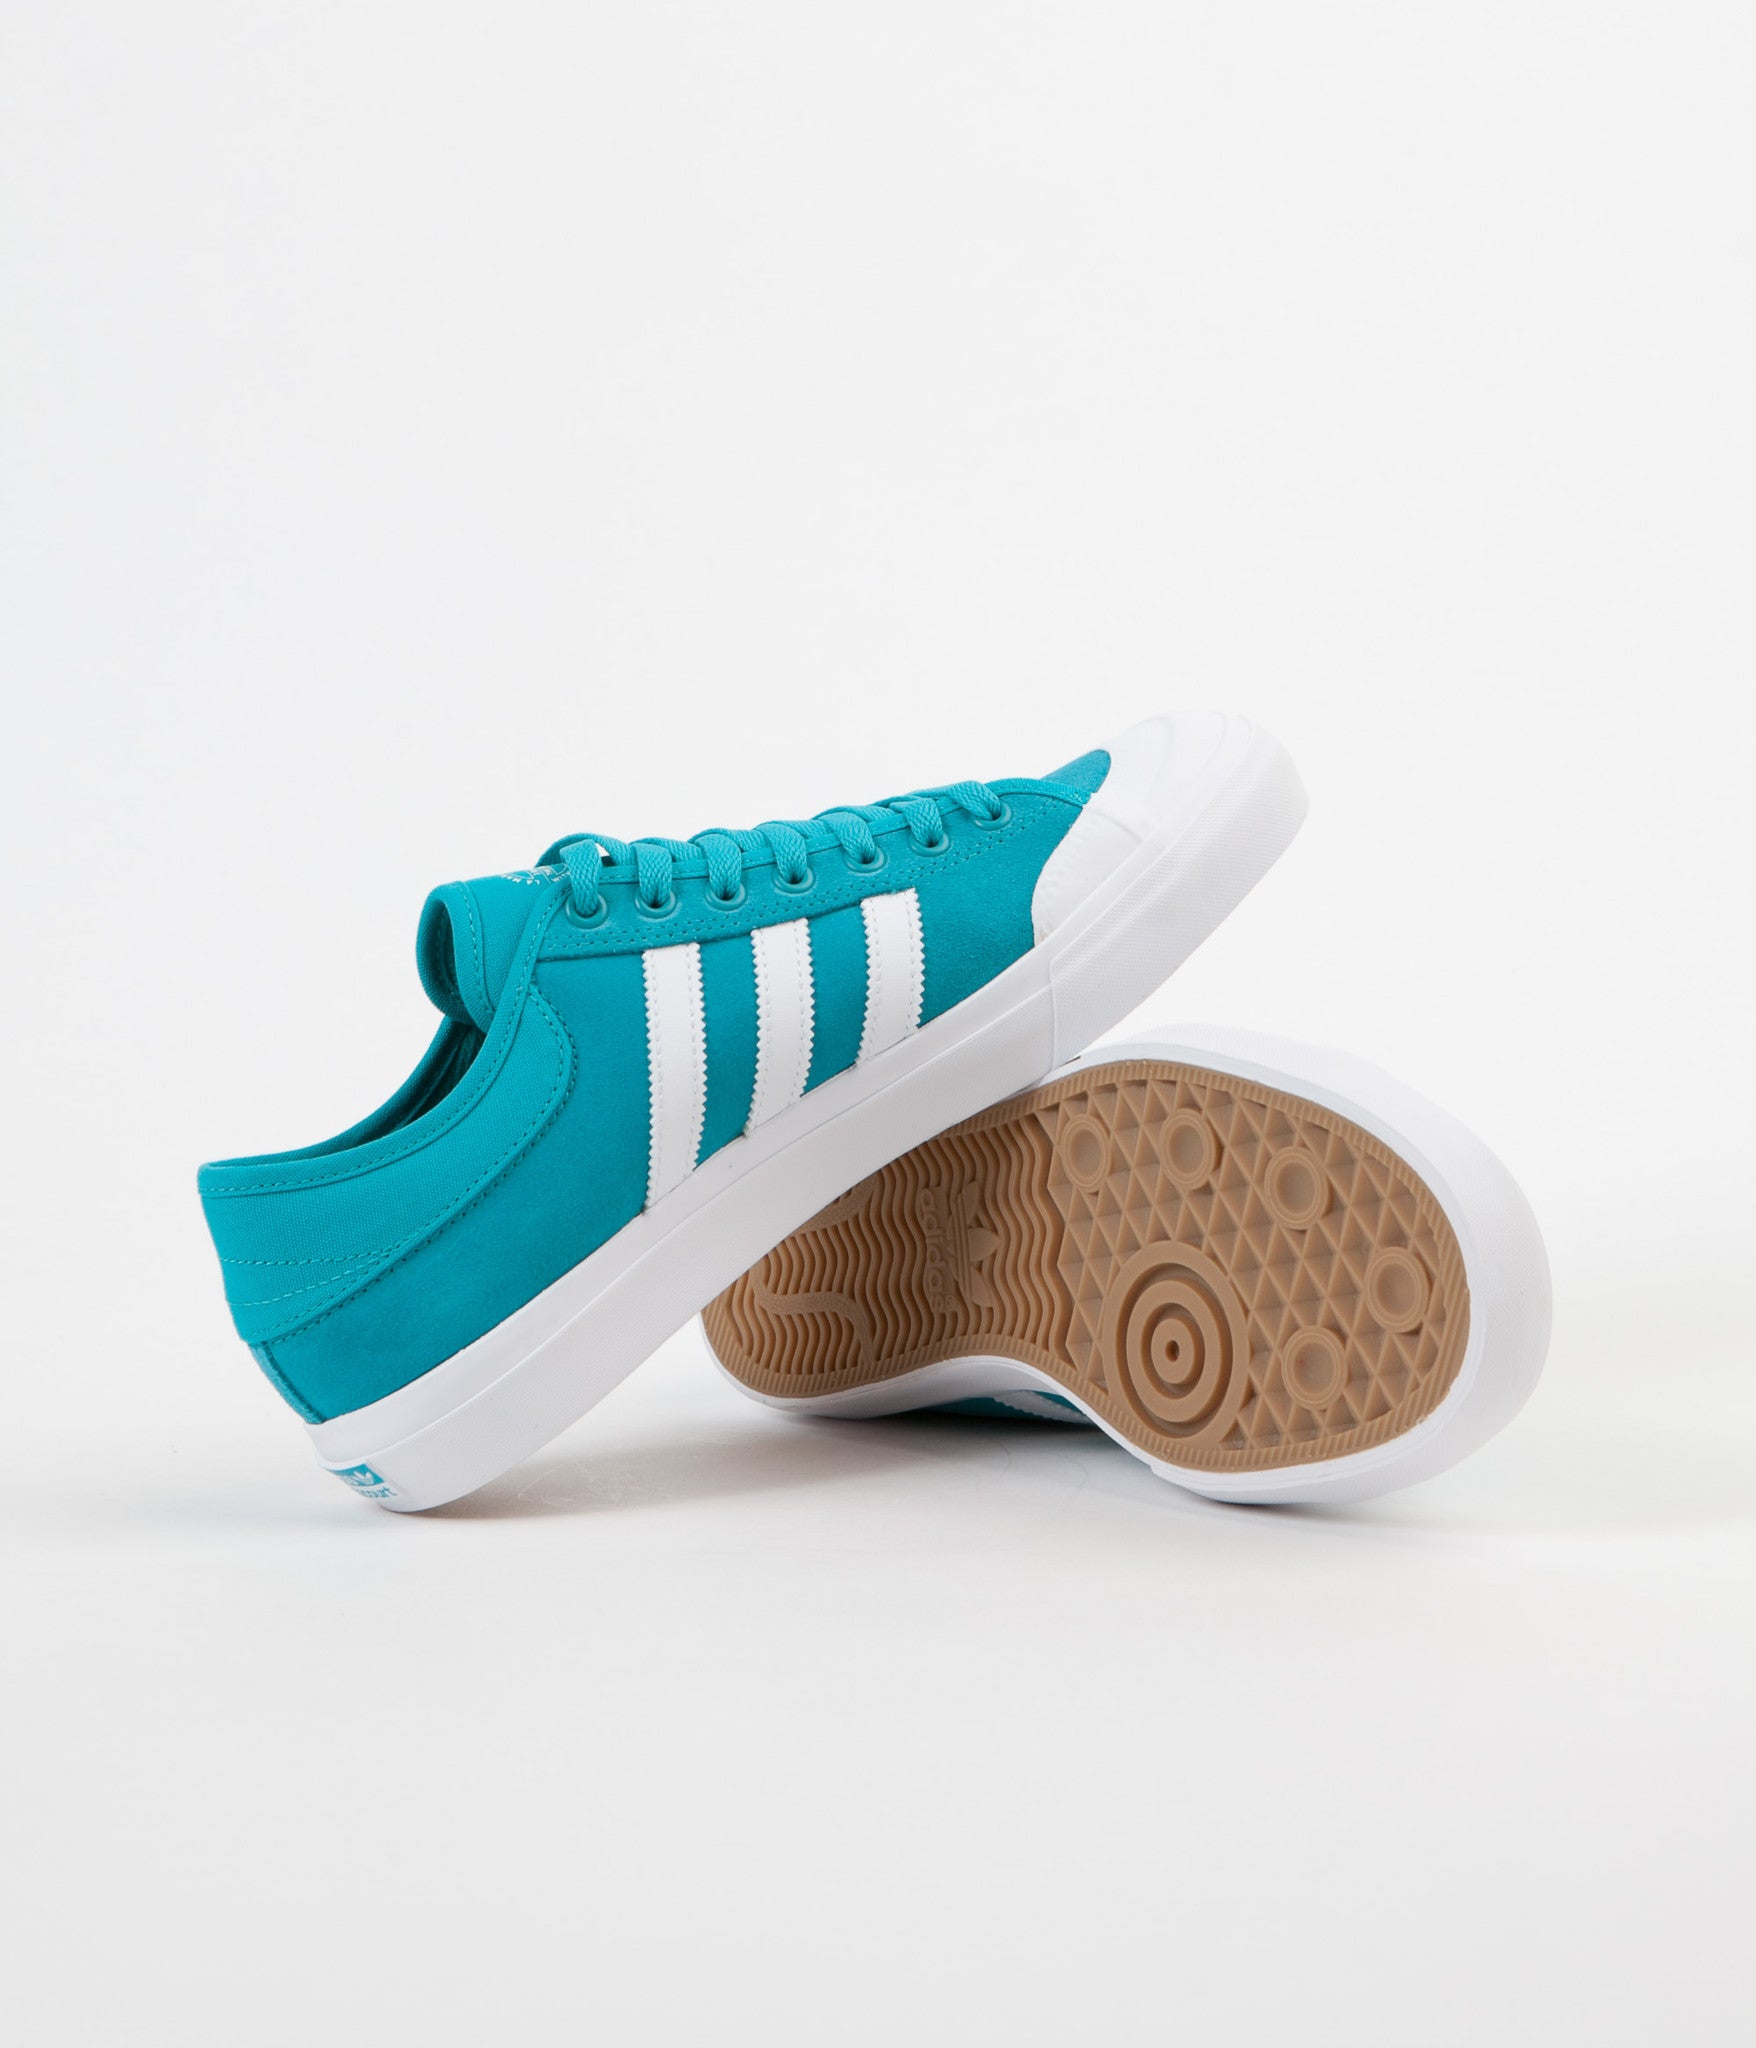 Adidas Matchcourt Shoes - Energy Blue / White / Gum4